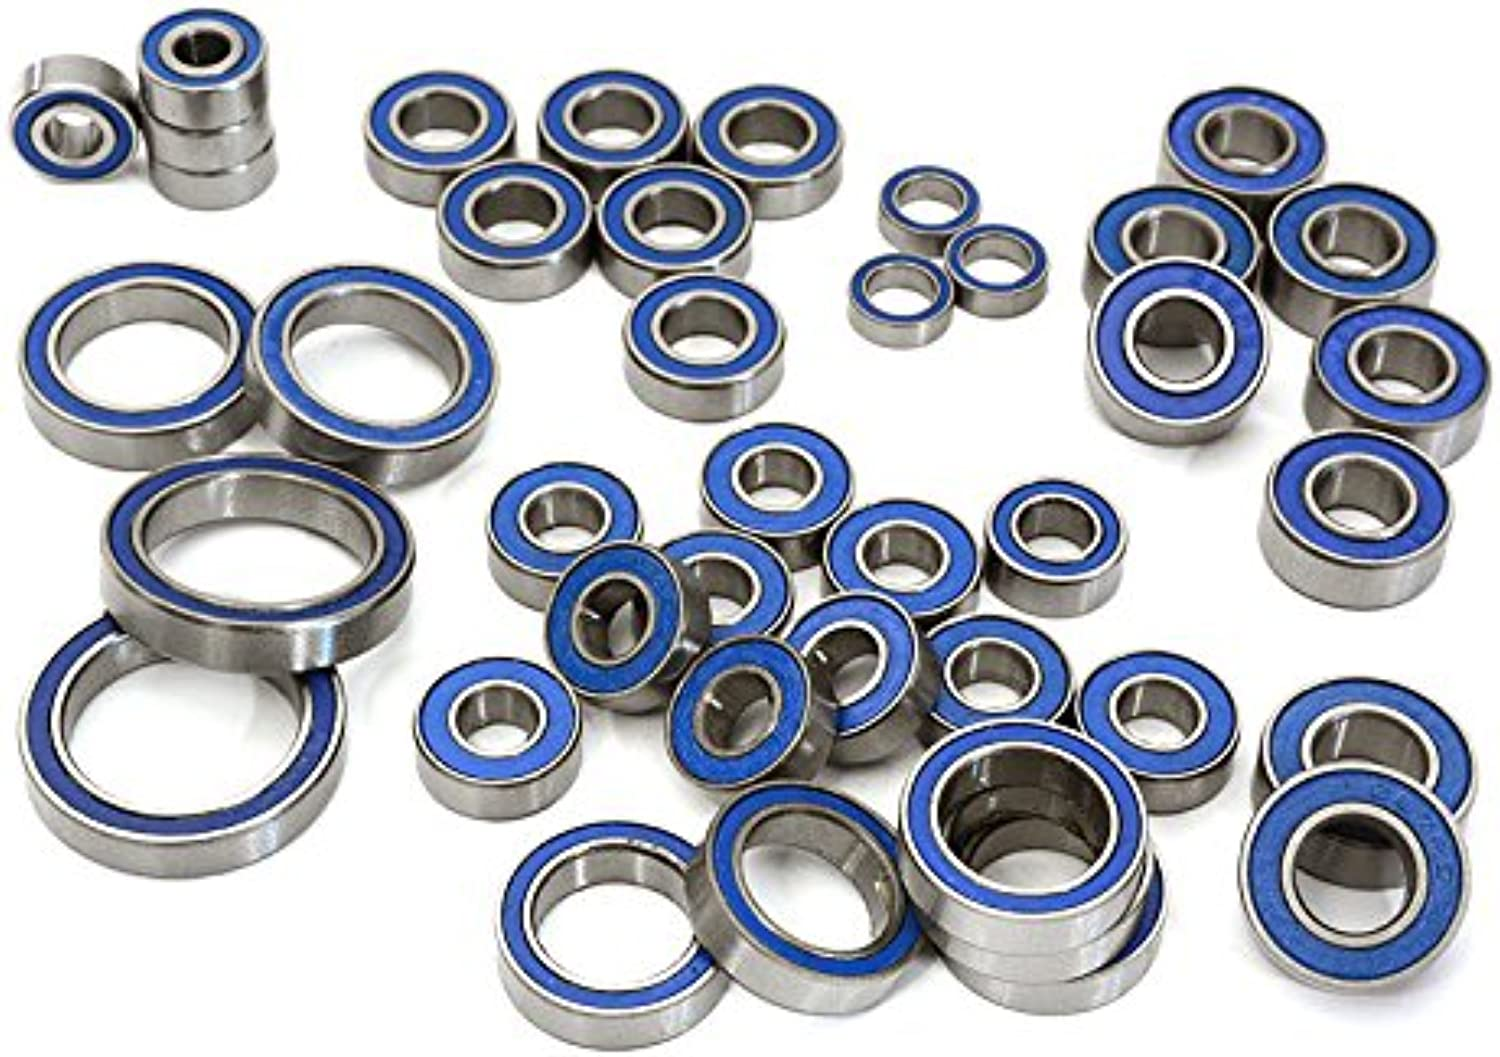 Integy RC Model Hop-ups C28041 Complete Rubber Seal Bearing Set (41) for Traxxas TRX-4 Scale & Trail Crawler